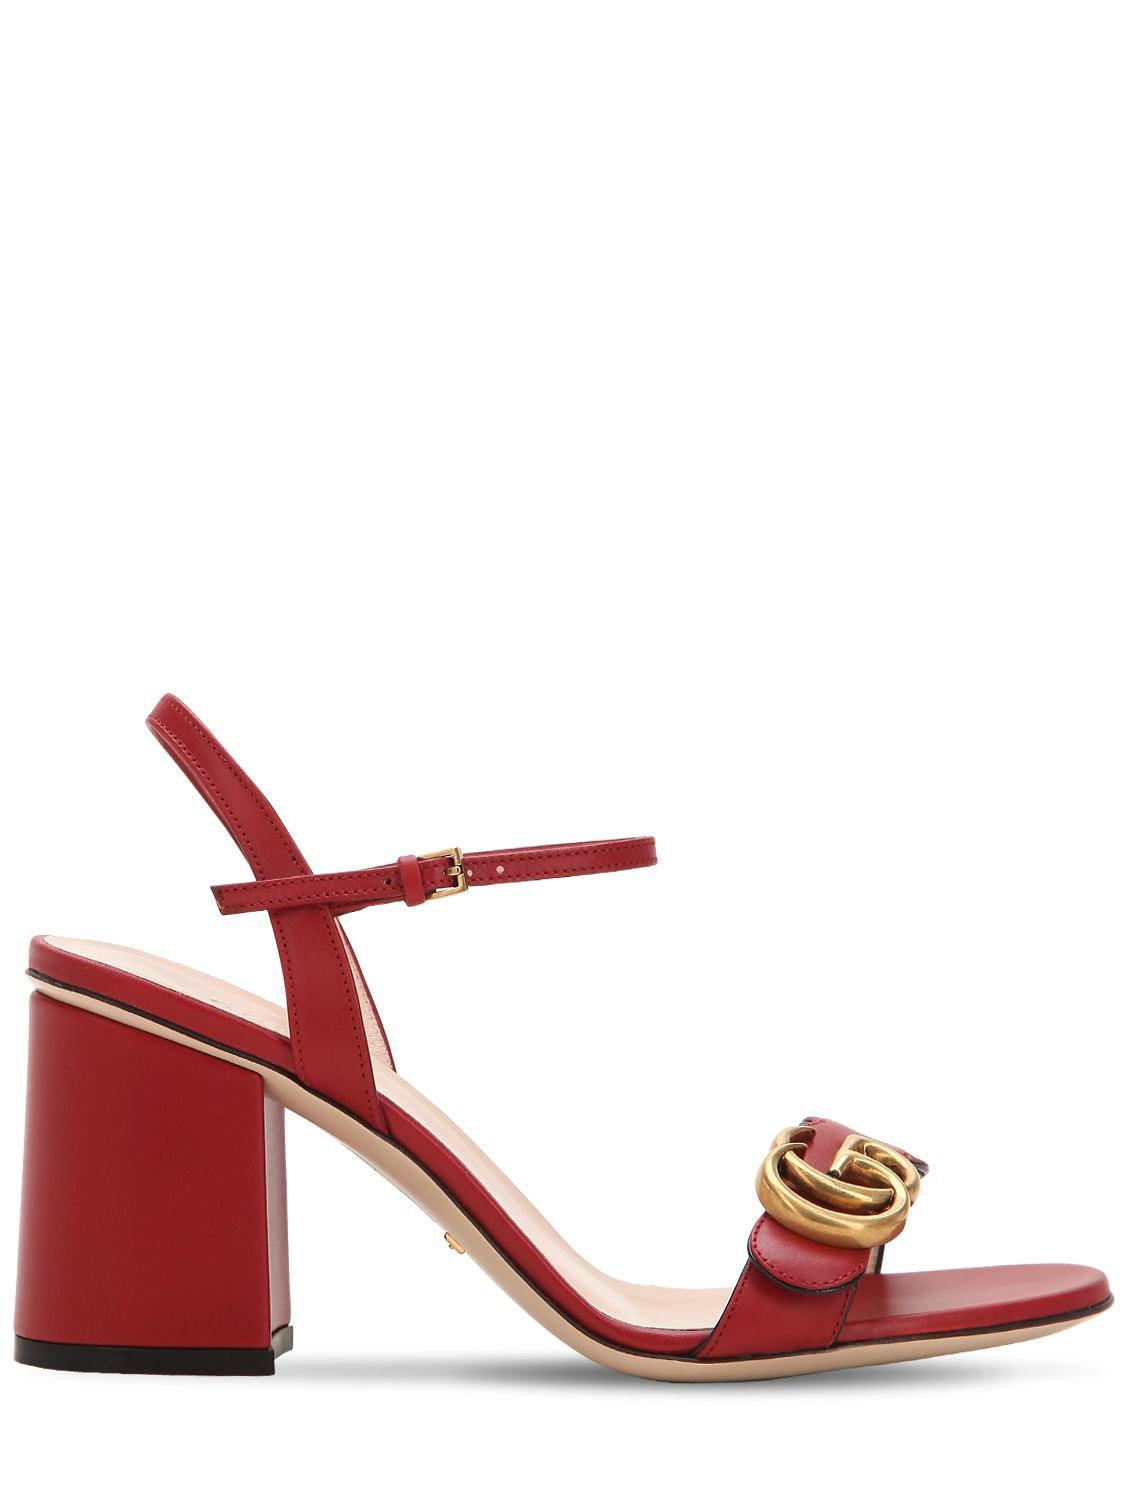 8005faa195d Gucci Red Marmont Heeled Sandals in Red - Save 17% - Lyst